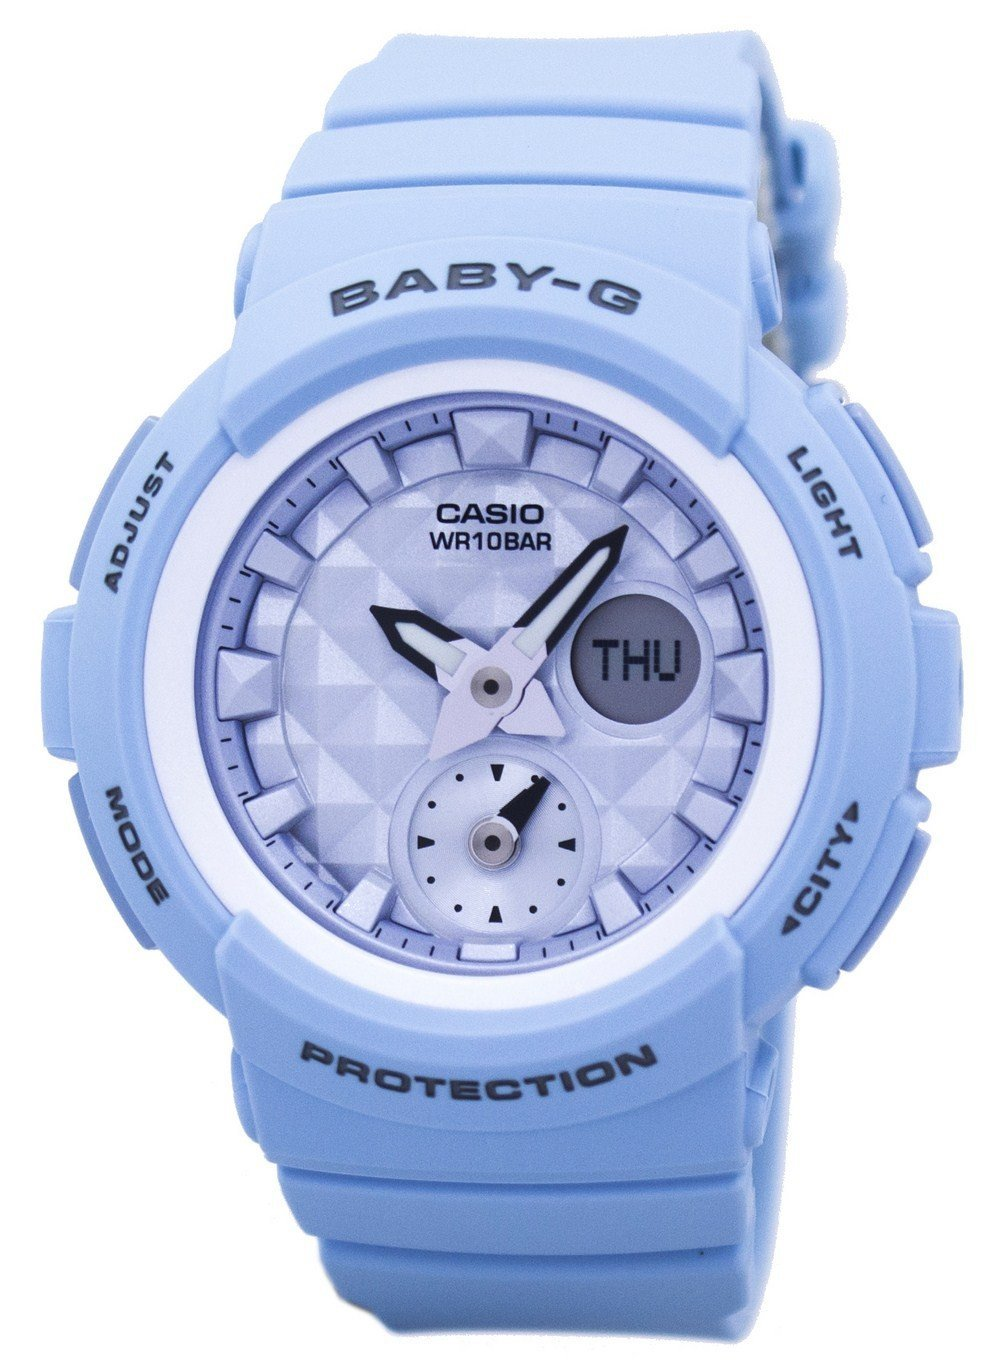 Casio Baby-G Shock Resistant  World Time Analog Digital BGA-190BE-2A BGA190BE-2A Women's Watch